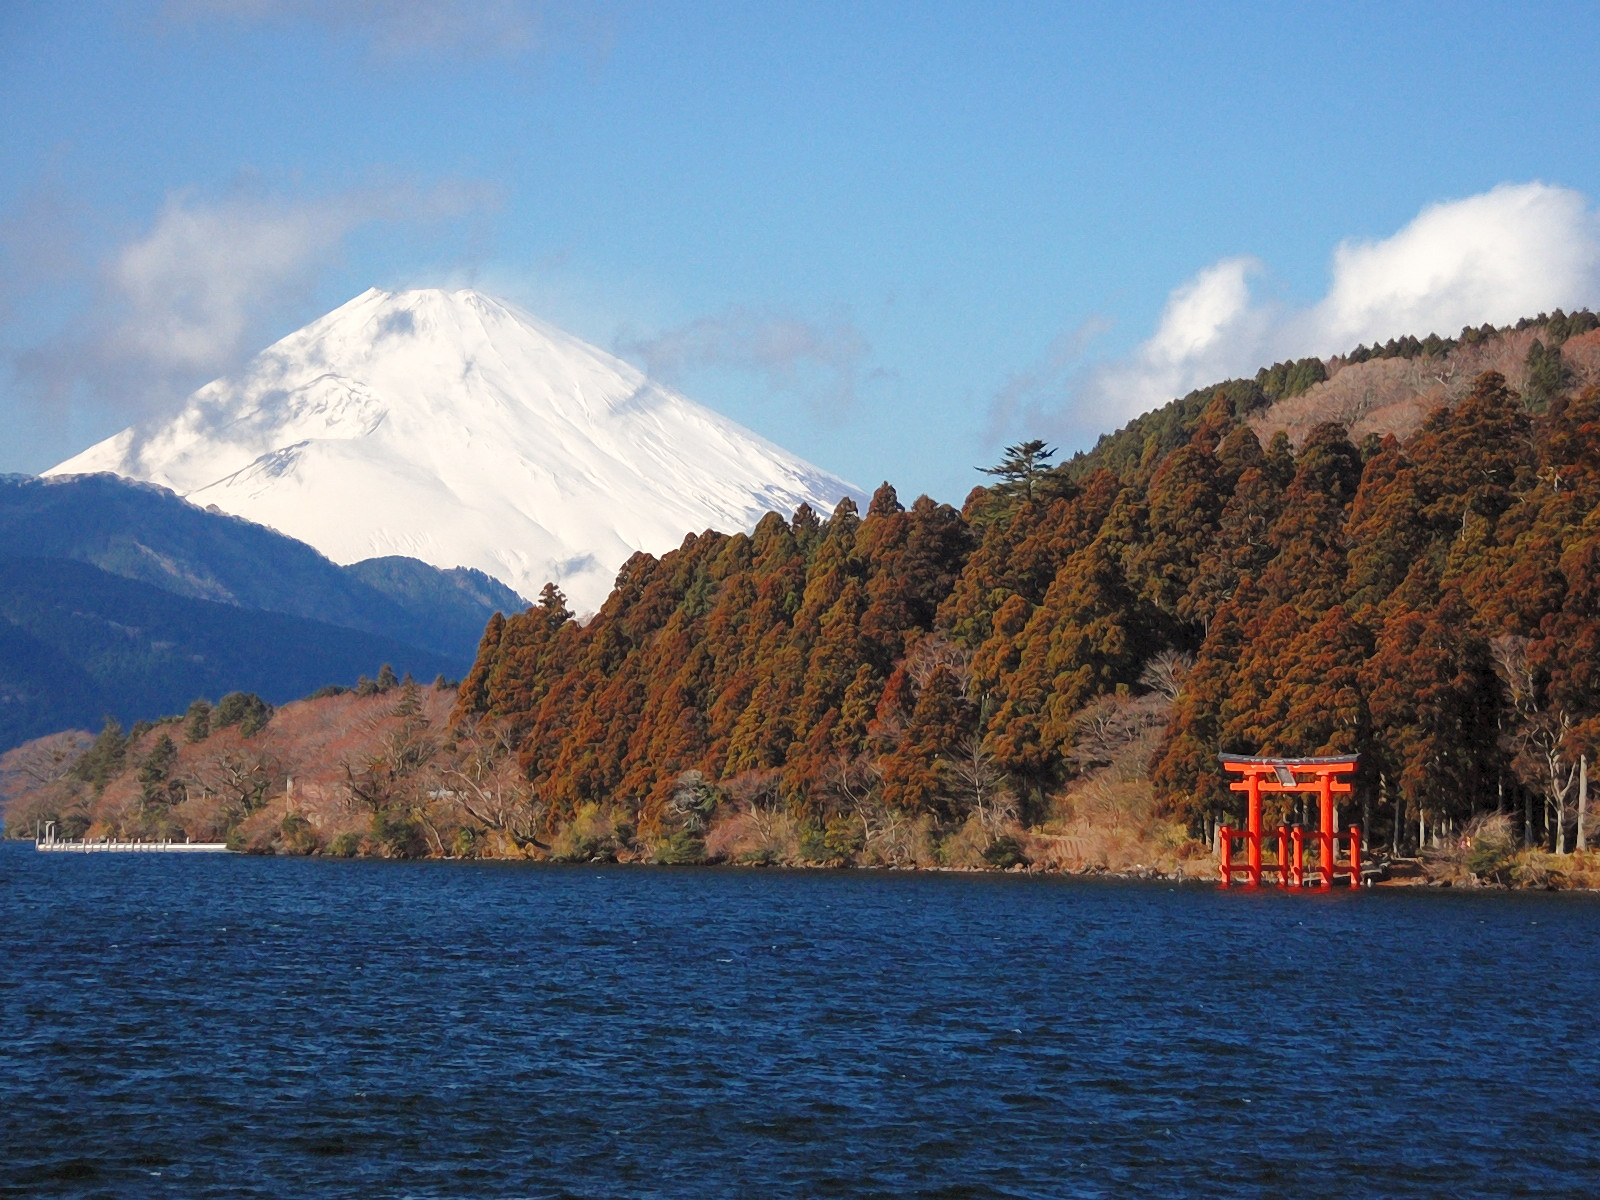 Check Out These Beautiful Photos Of Hakone In Japan